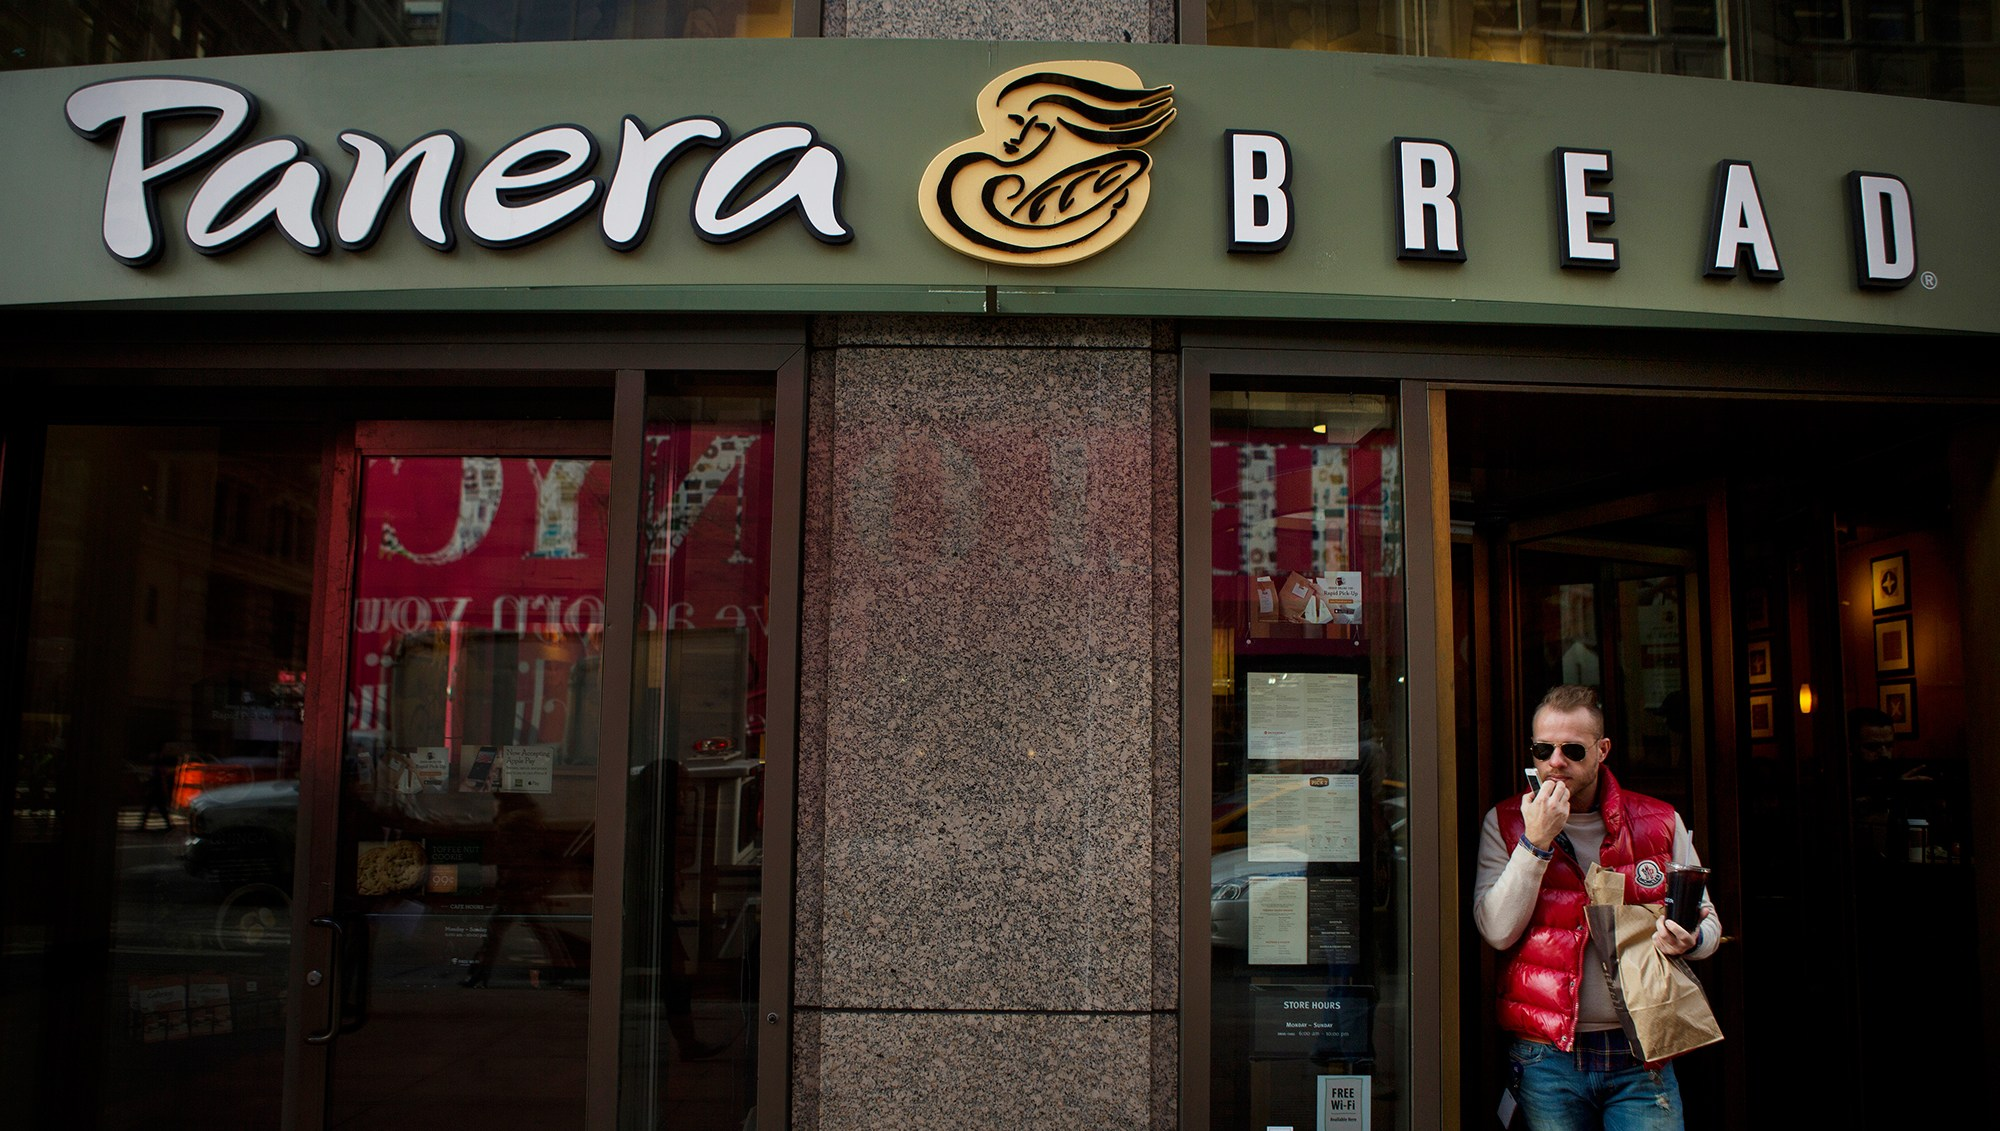 Panera Bread Is Giving Out Free Bagels Every Day From Now Until 2019, But There's a Catch